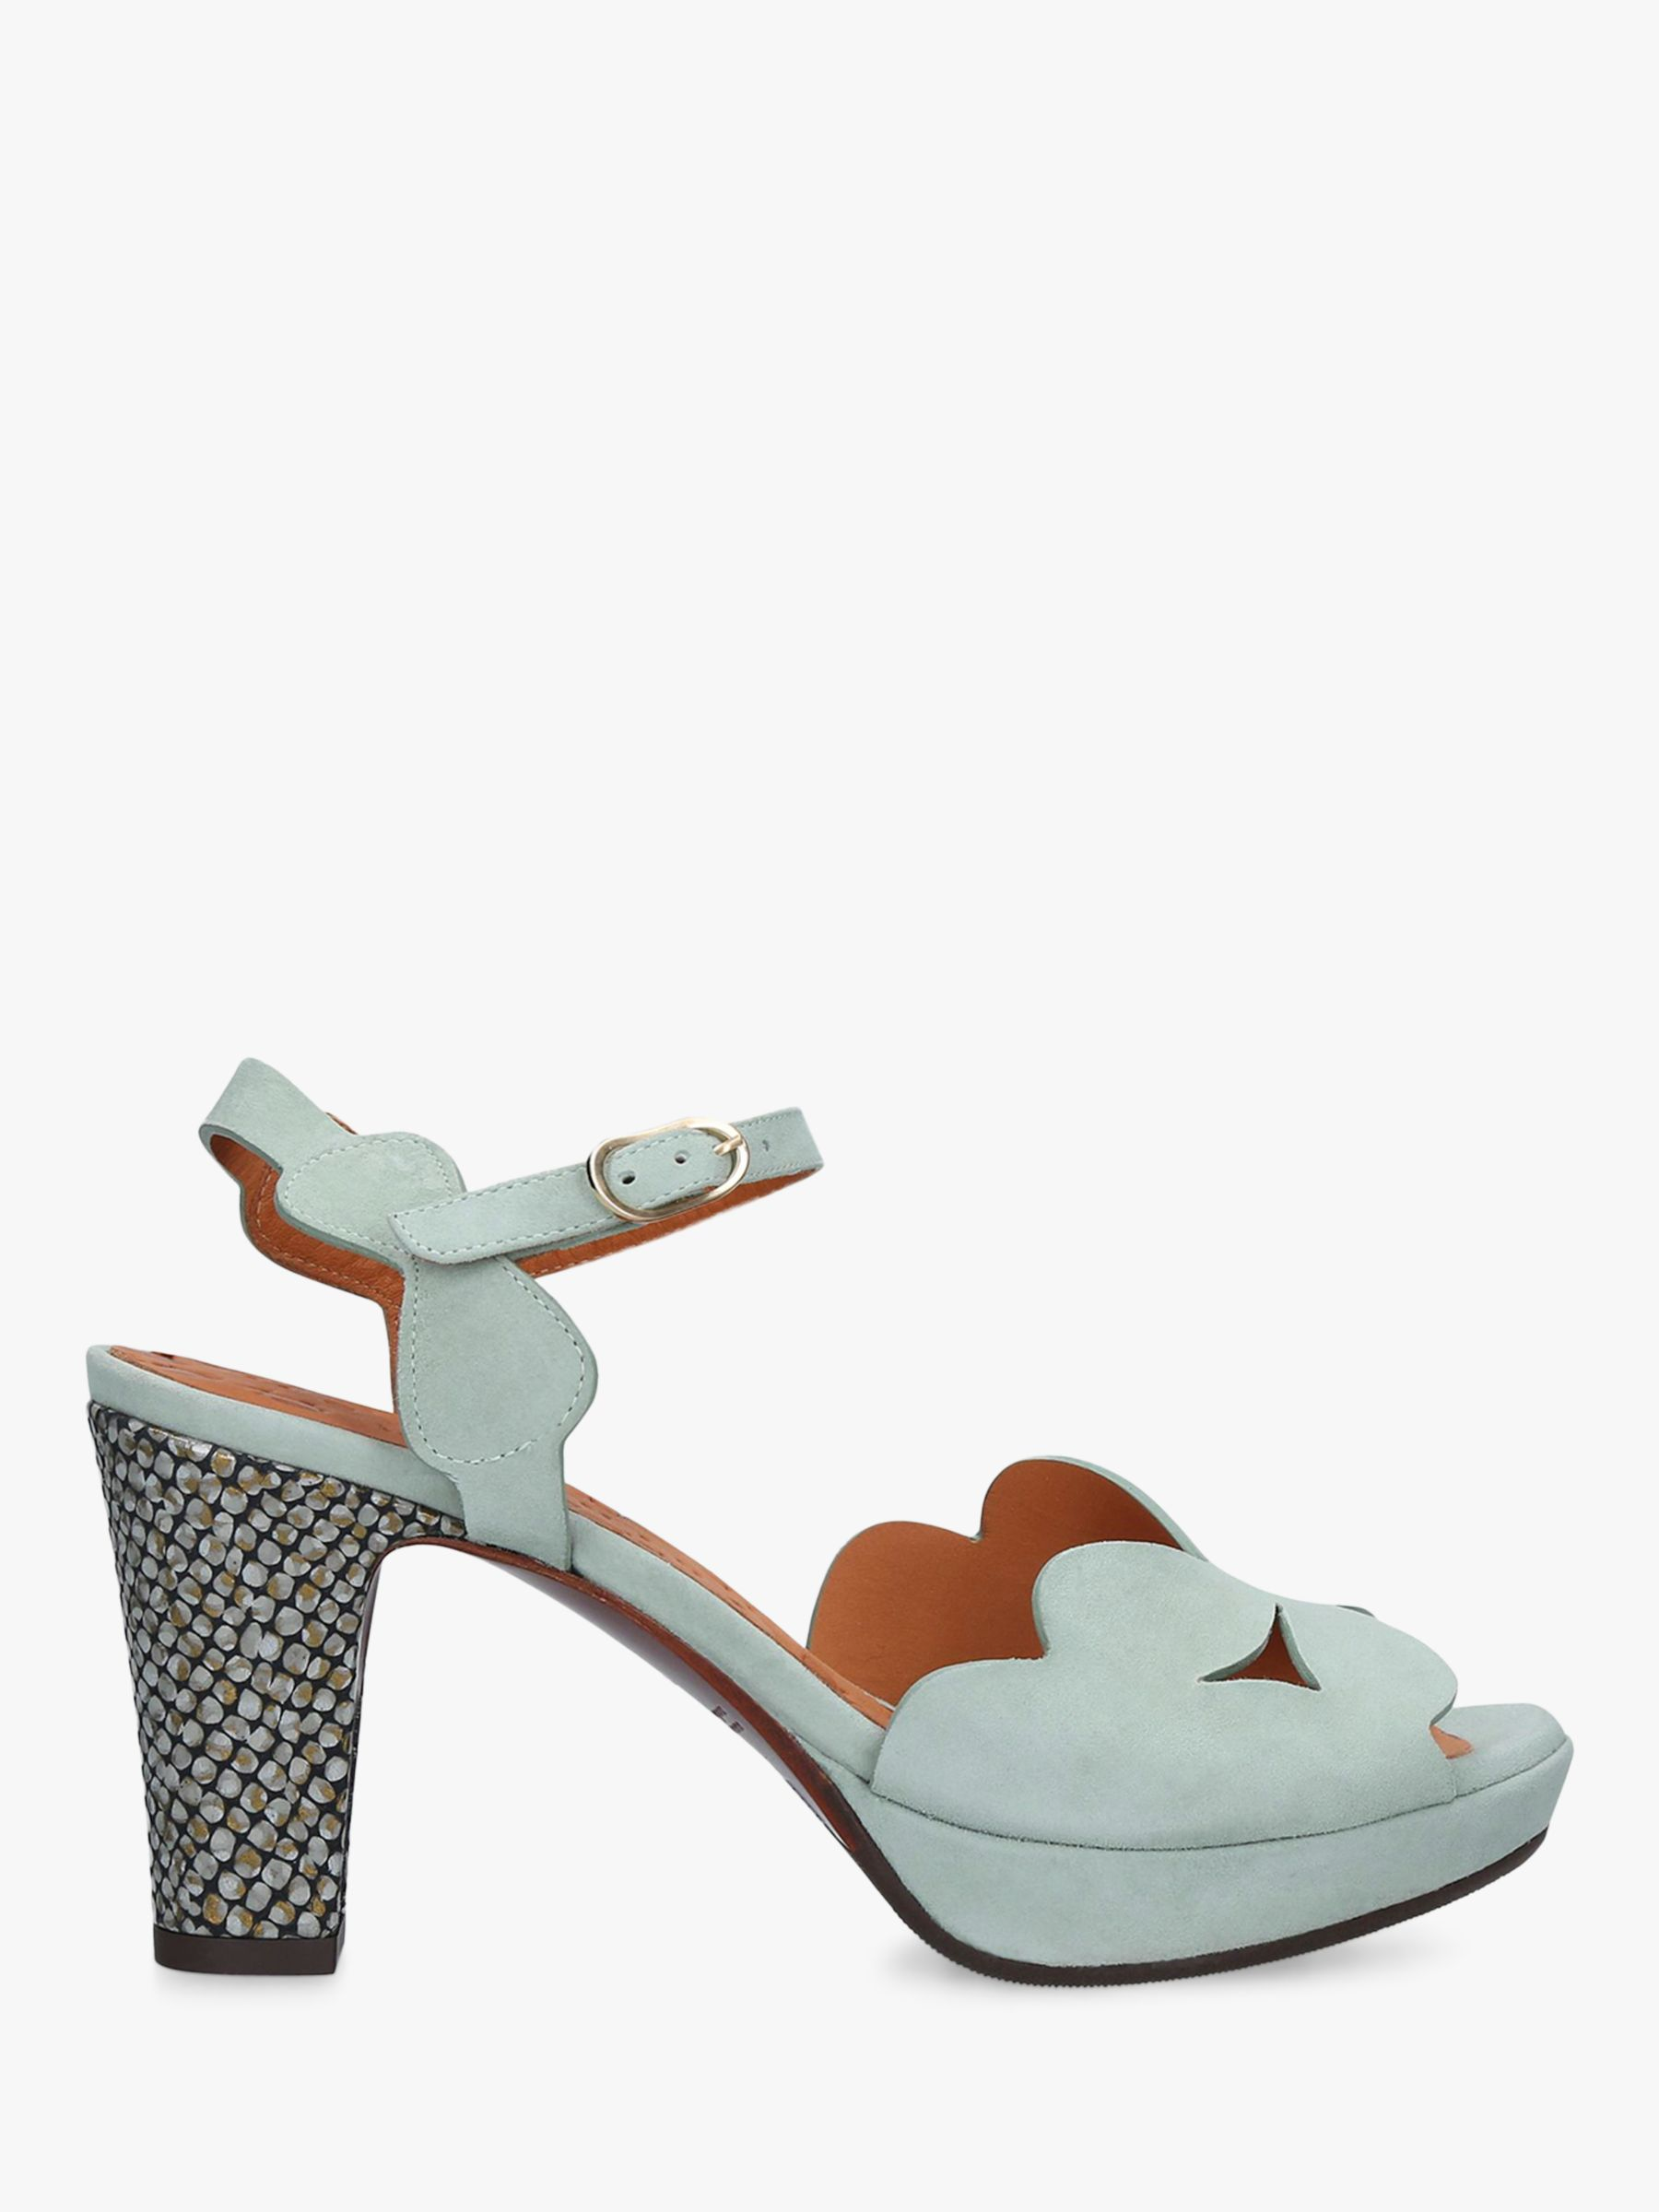 Chie Mihara Chie Mihara Edana Scallop Detail Block Heel Leather Occasion Shoes